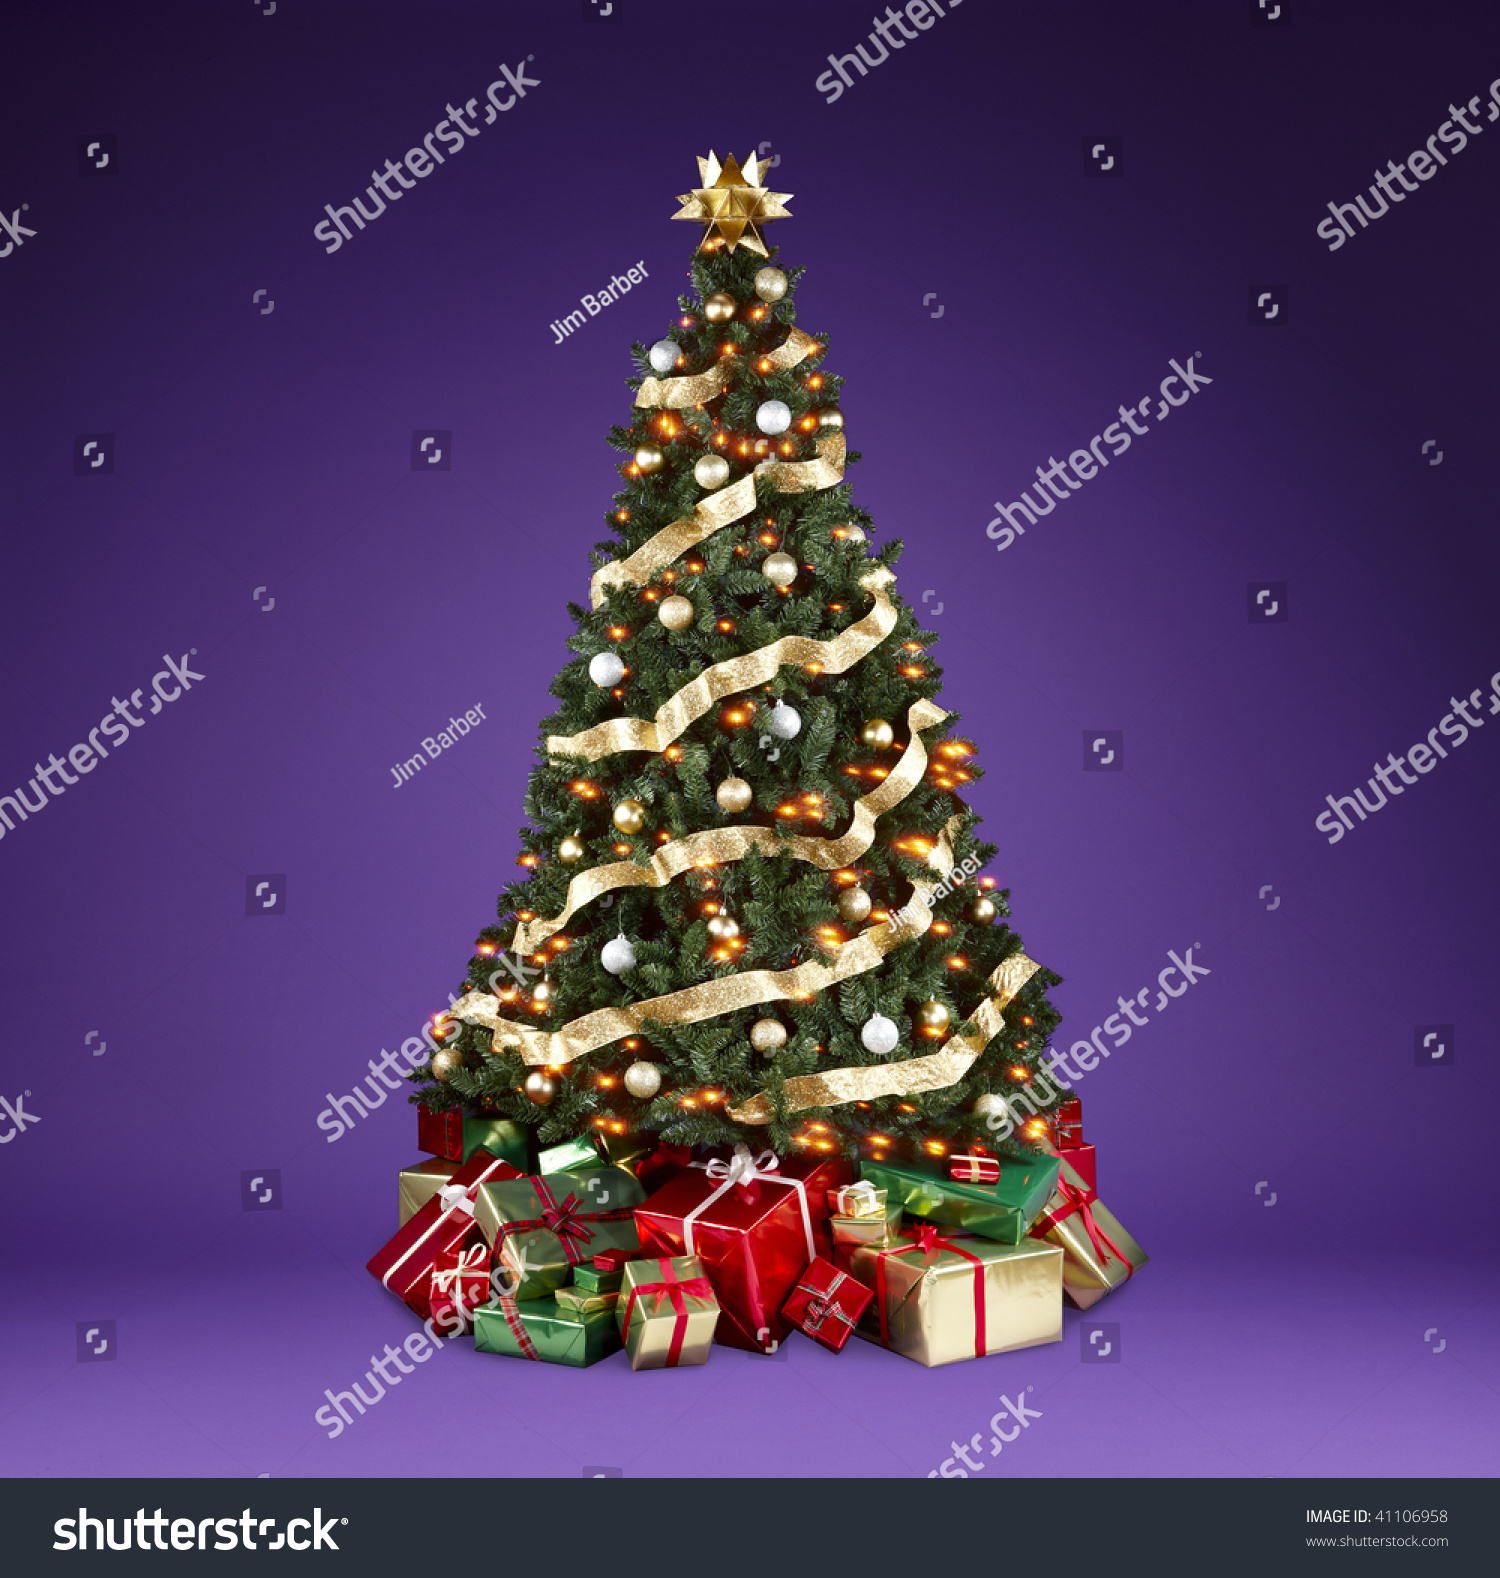 Beautifully Decorated Christmas Tree Lights Ribbons Stock Photo ...